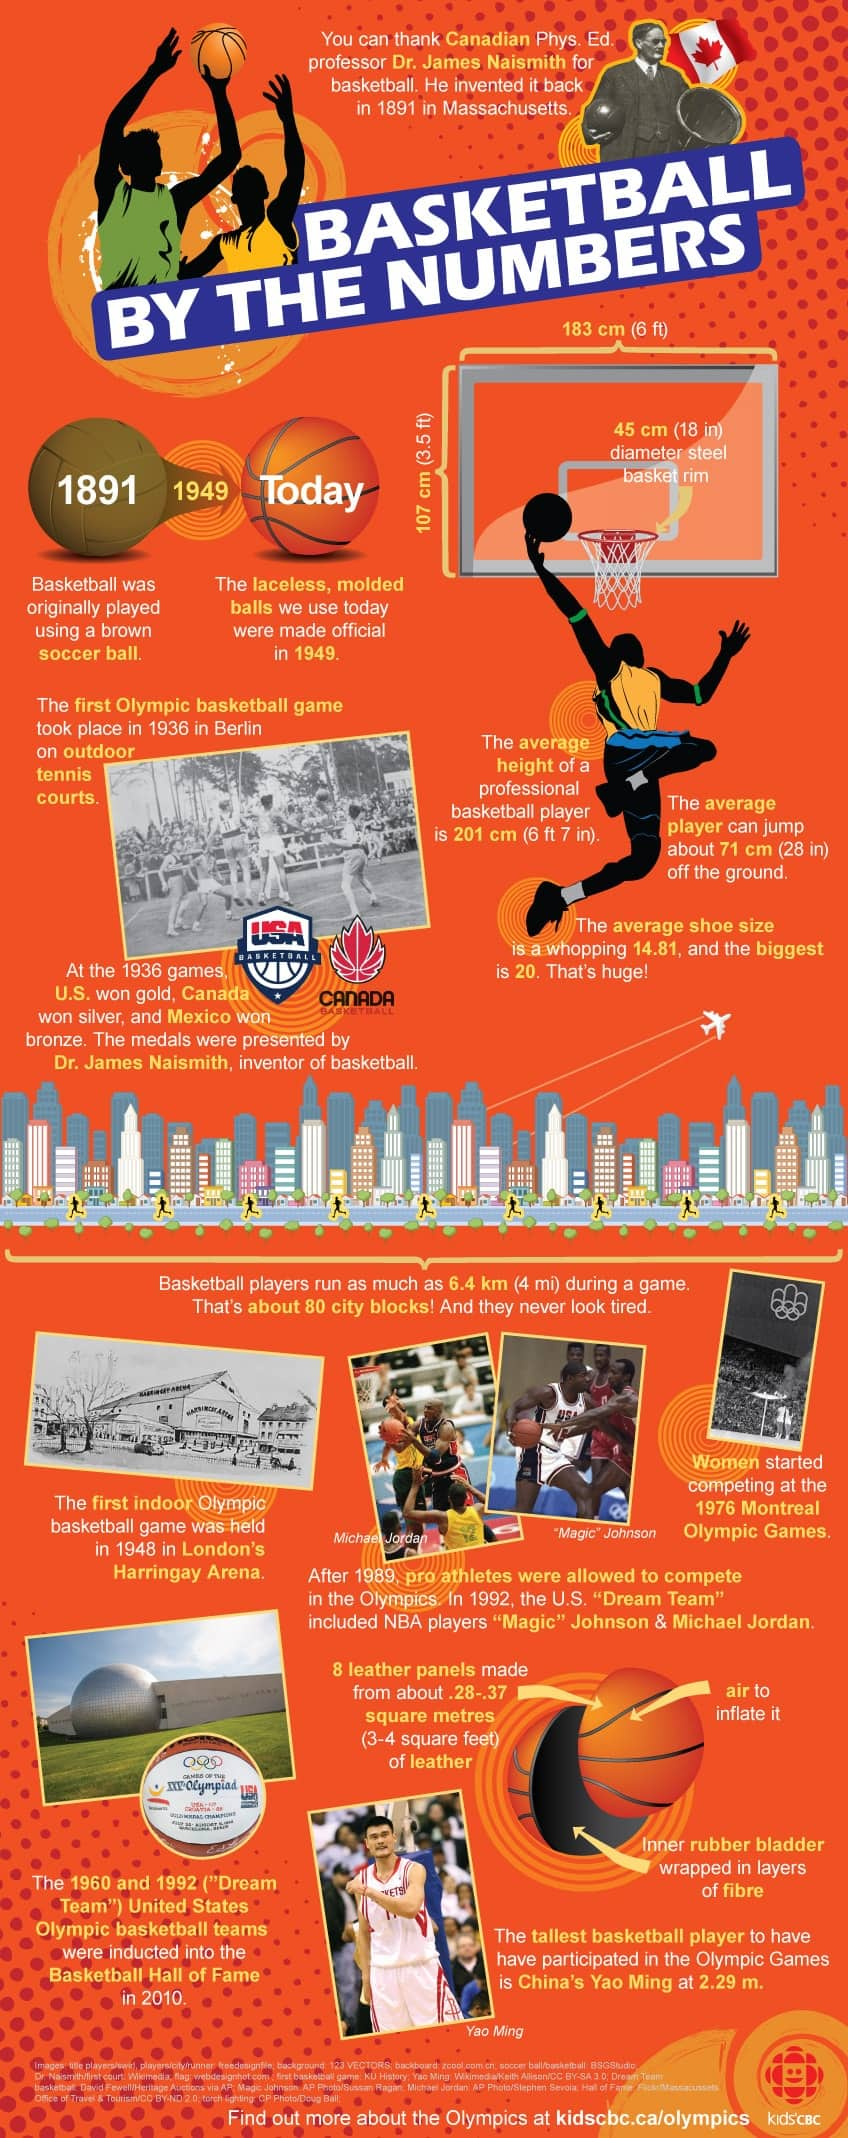 Basketball by the numbers infographic